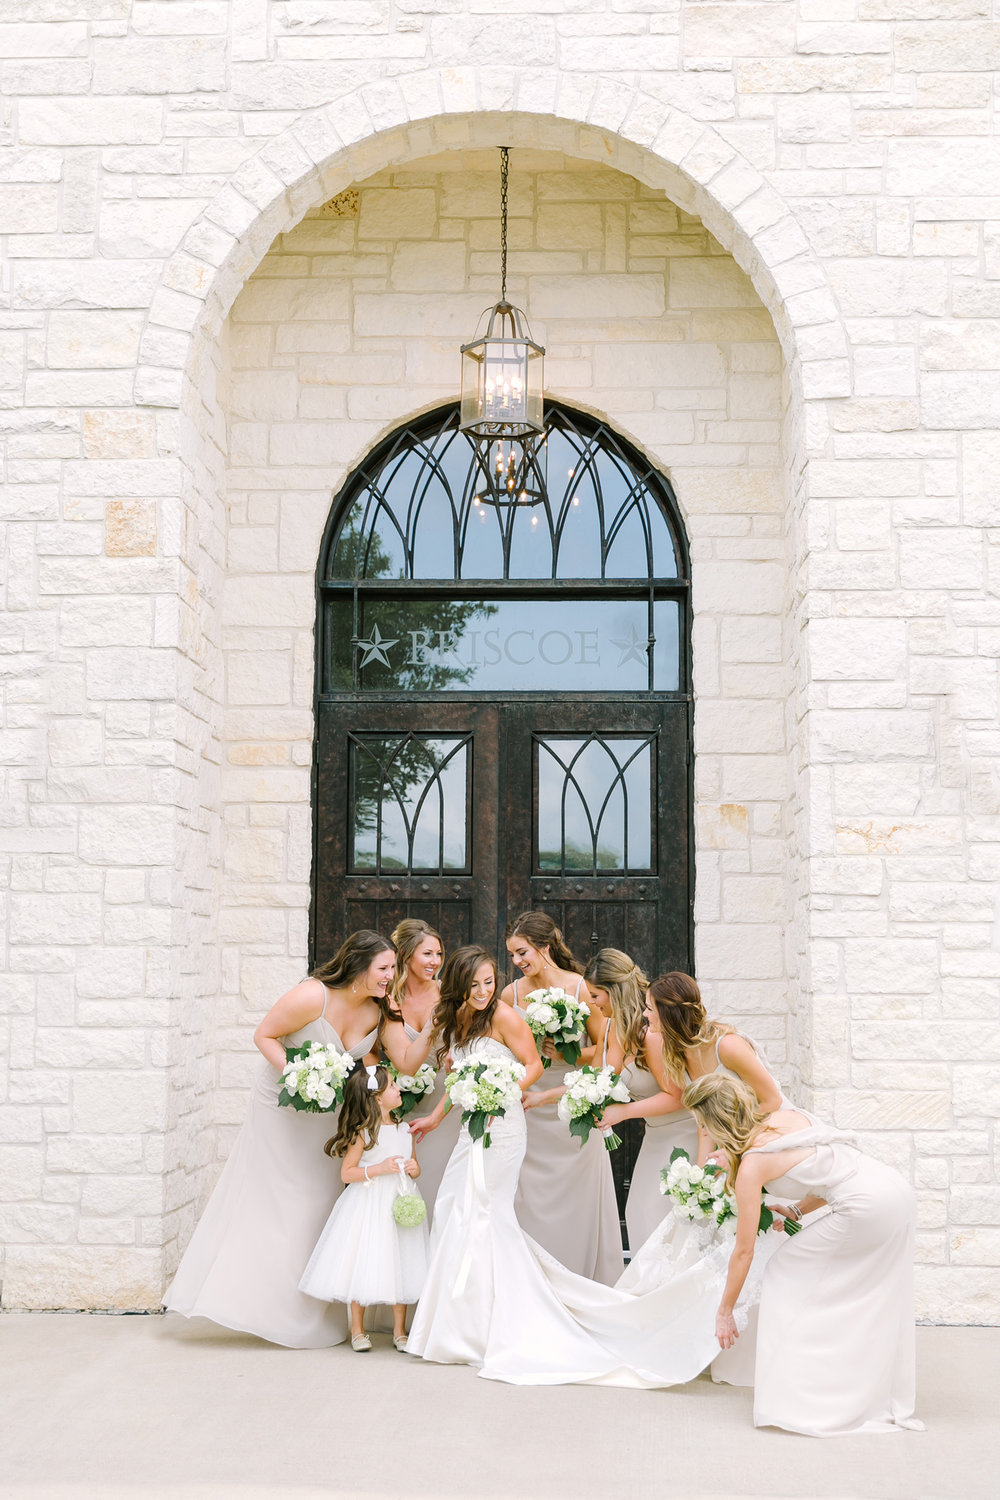 Austin_Wedding_Photographer_Kimberly_Brooke_Photographic_135.jpg